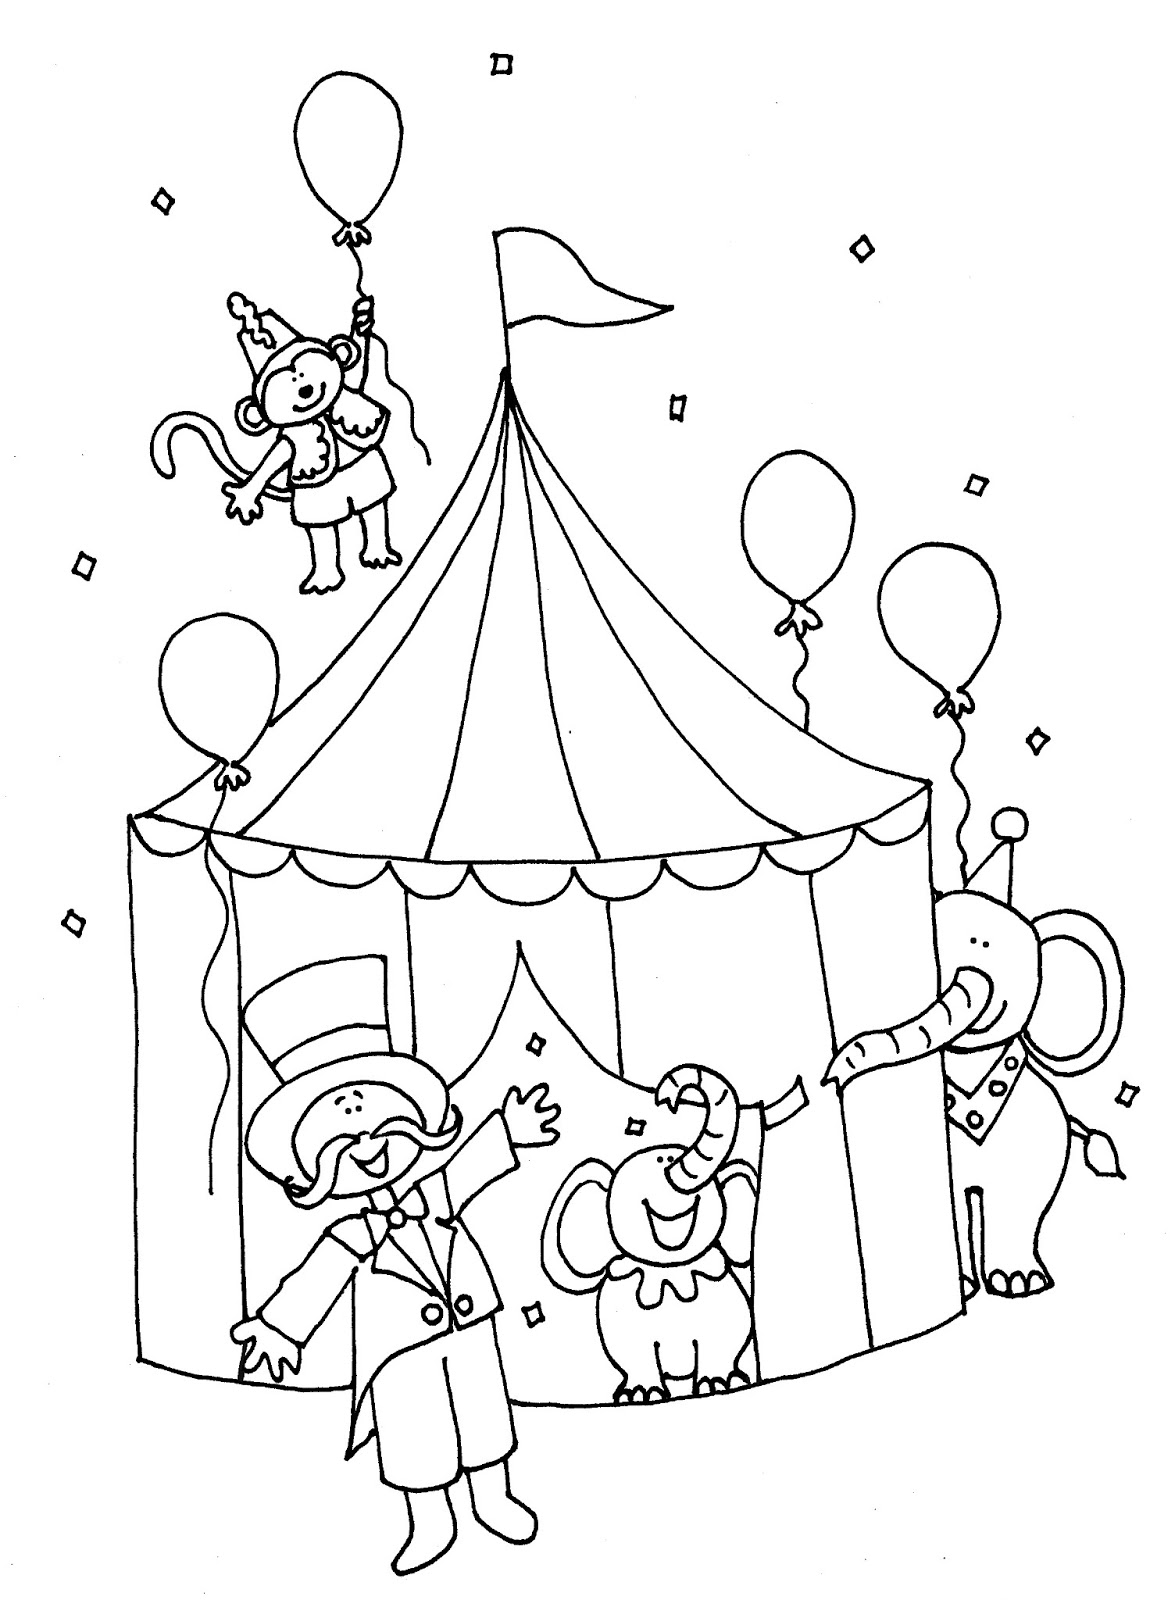 Tent Coloring Sheet Sketch Coloring Page